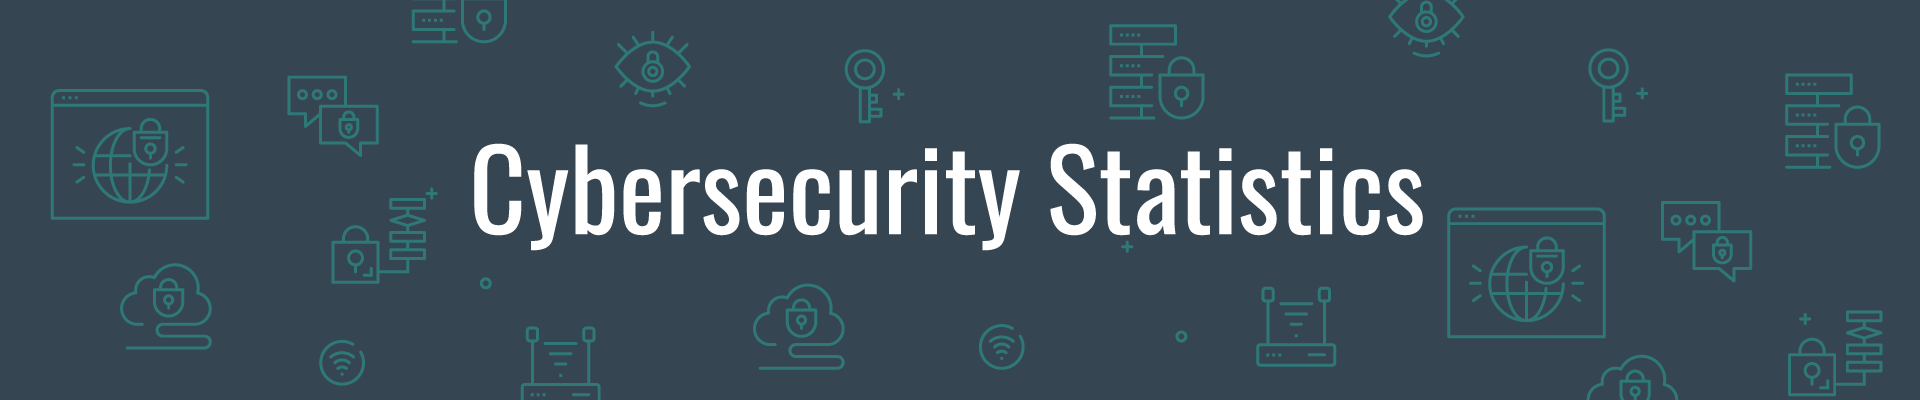 cybersecurity statistics and facts